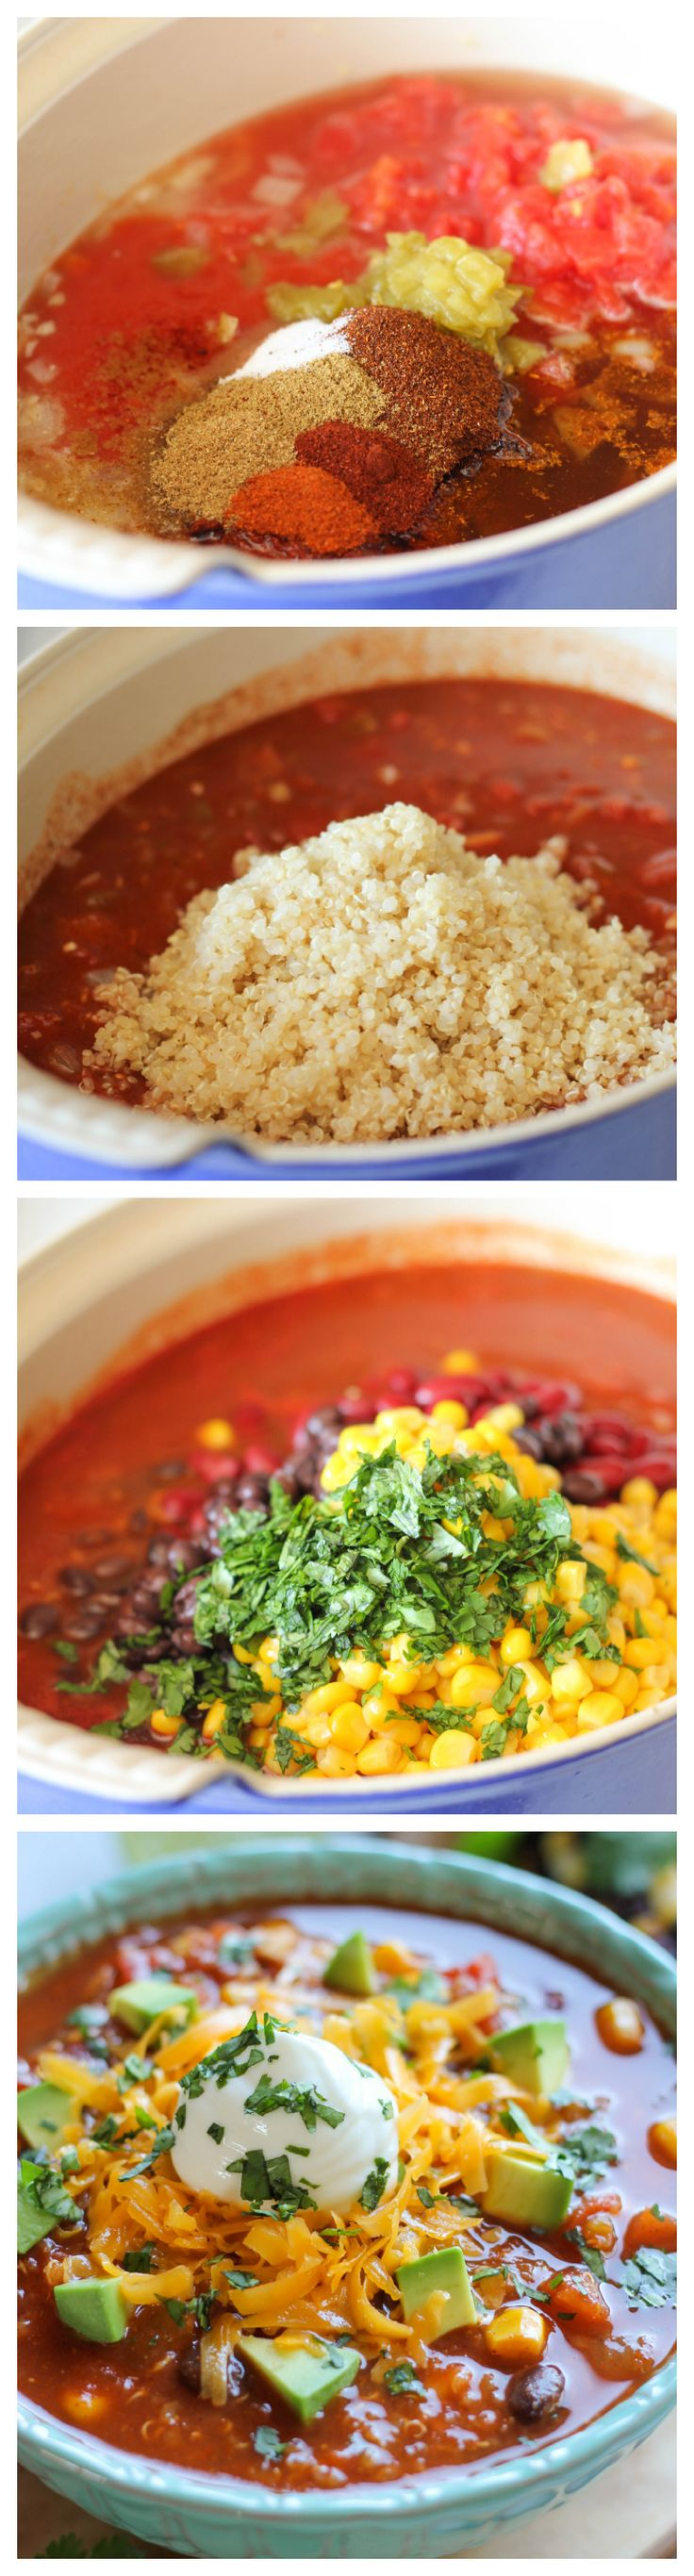 Quinoa Chili - This vegetarian, protein-packed chili is the perfect bowl of comfort food